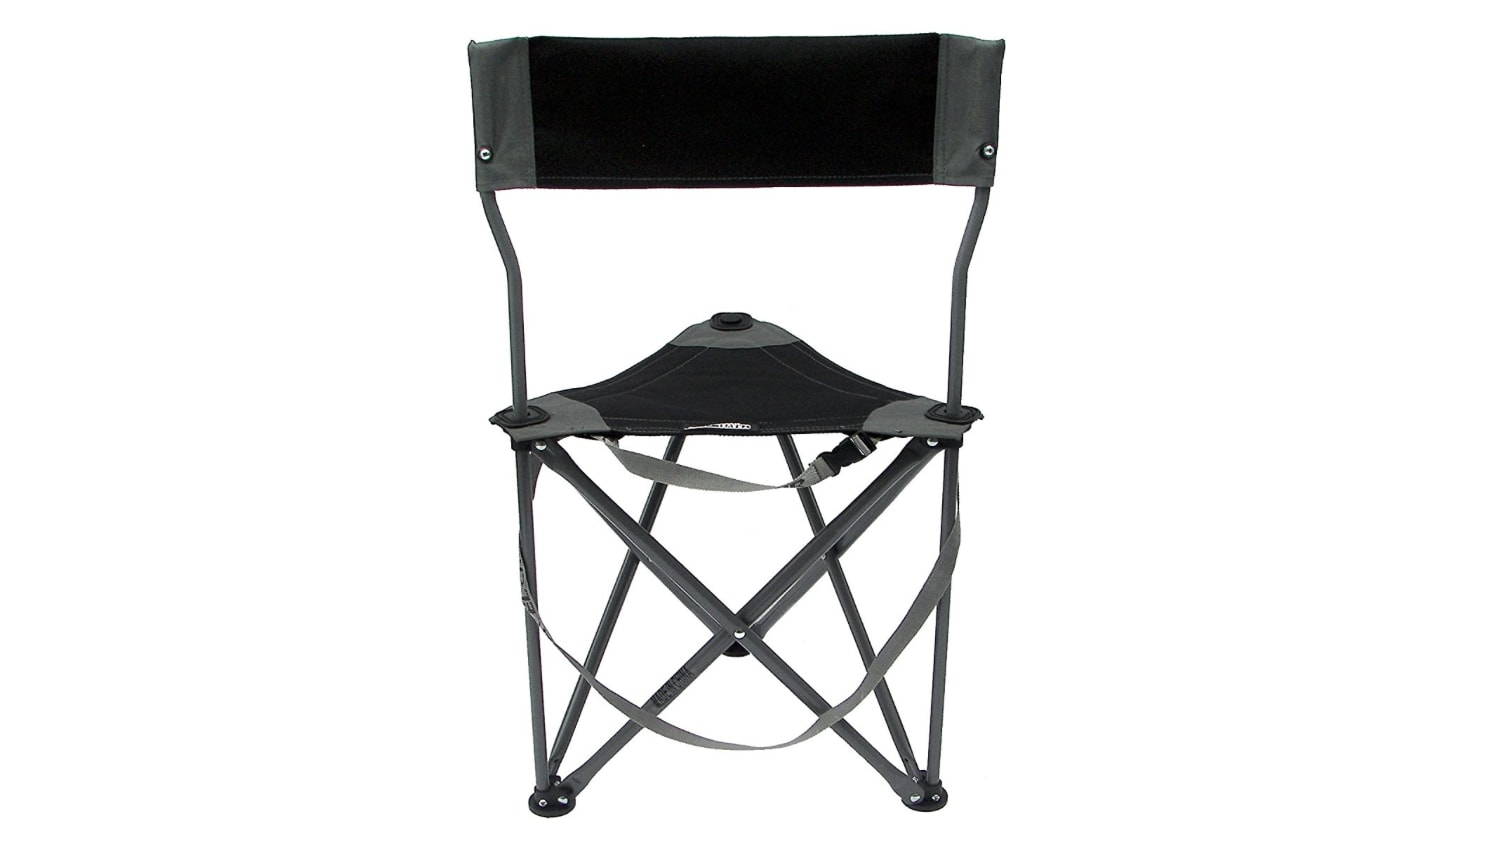 Stupendous Top 5 Best Tripod Stools For Hunting Camping Fishing Ocoug Best Dining Table And Chair Ideas Images Ocougorg